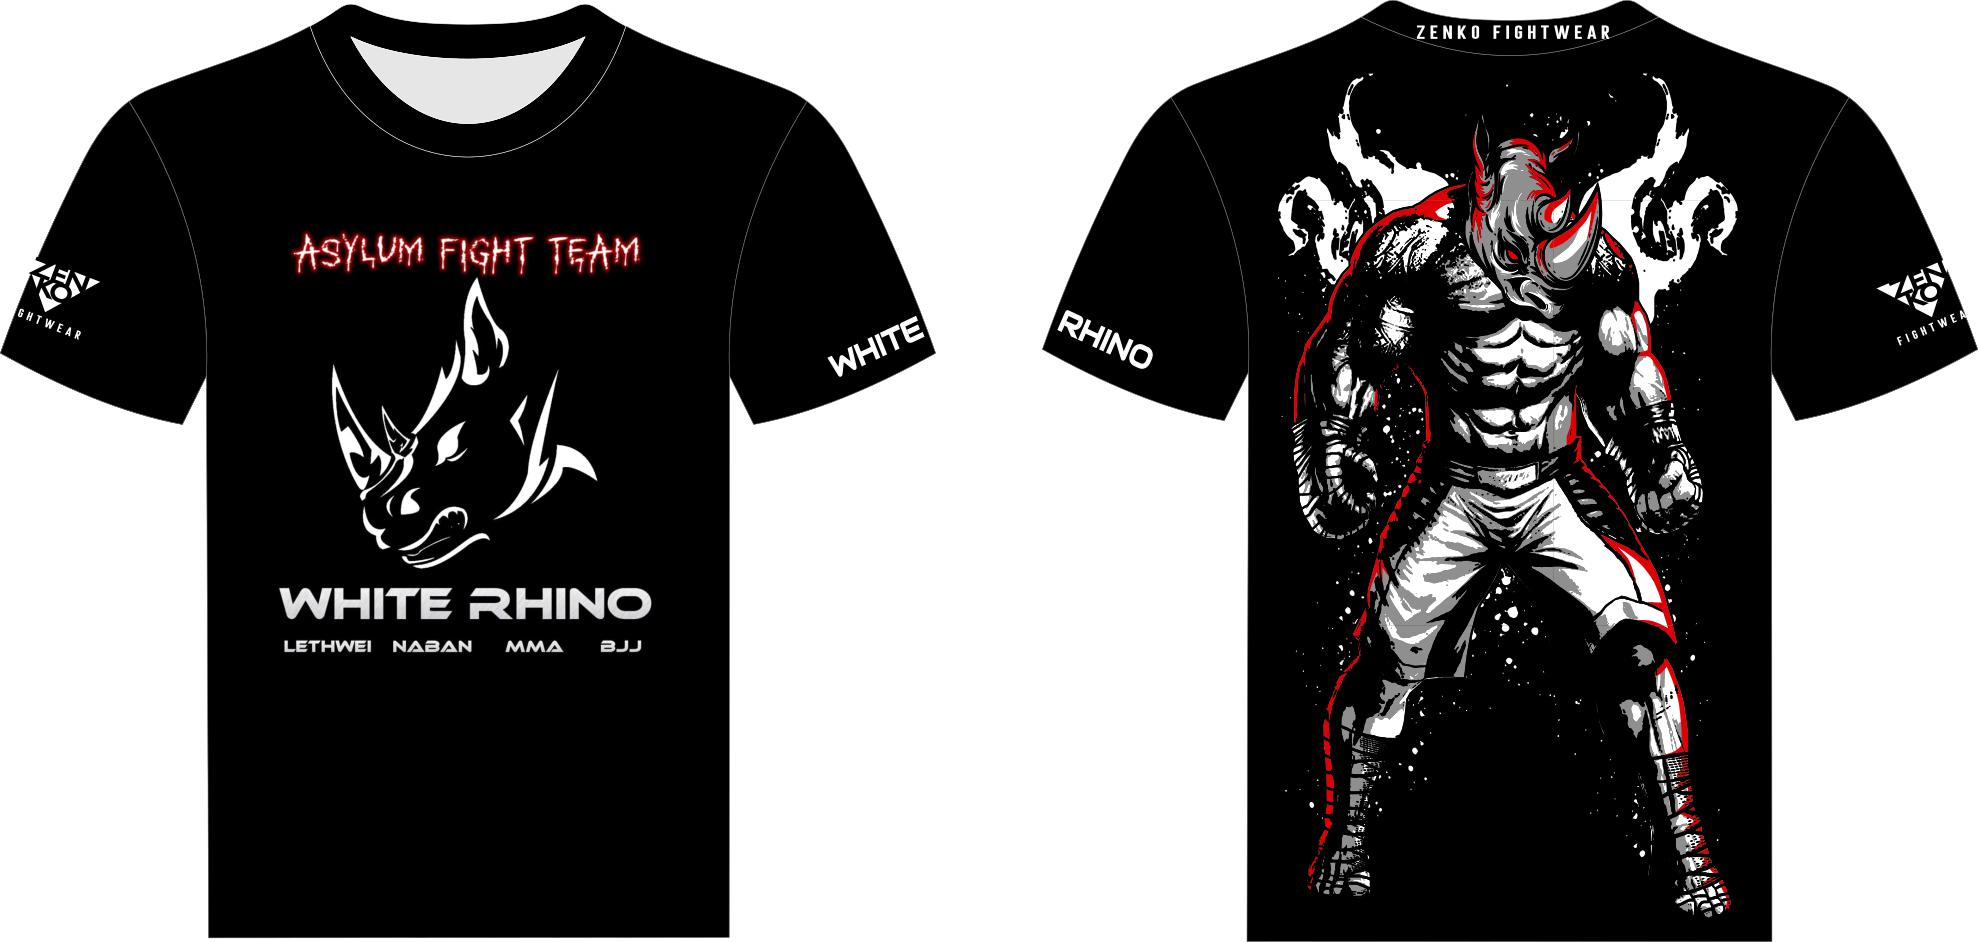 Asylum Fight Team - White Rhino Kickboxing Rhino Jersey Tee - Zenko Fightwear